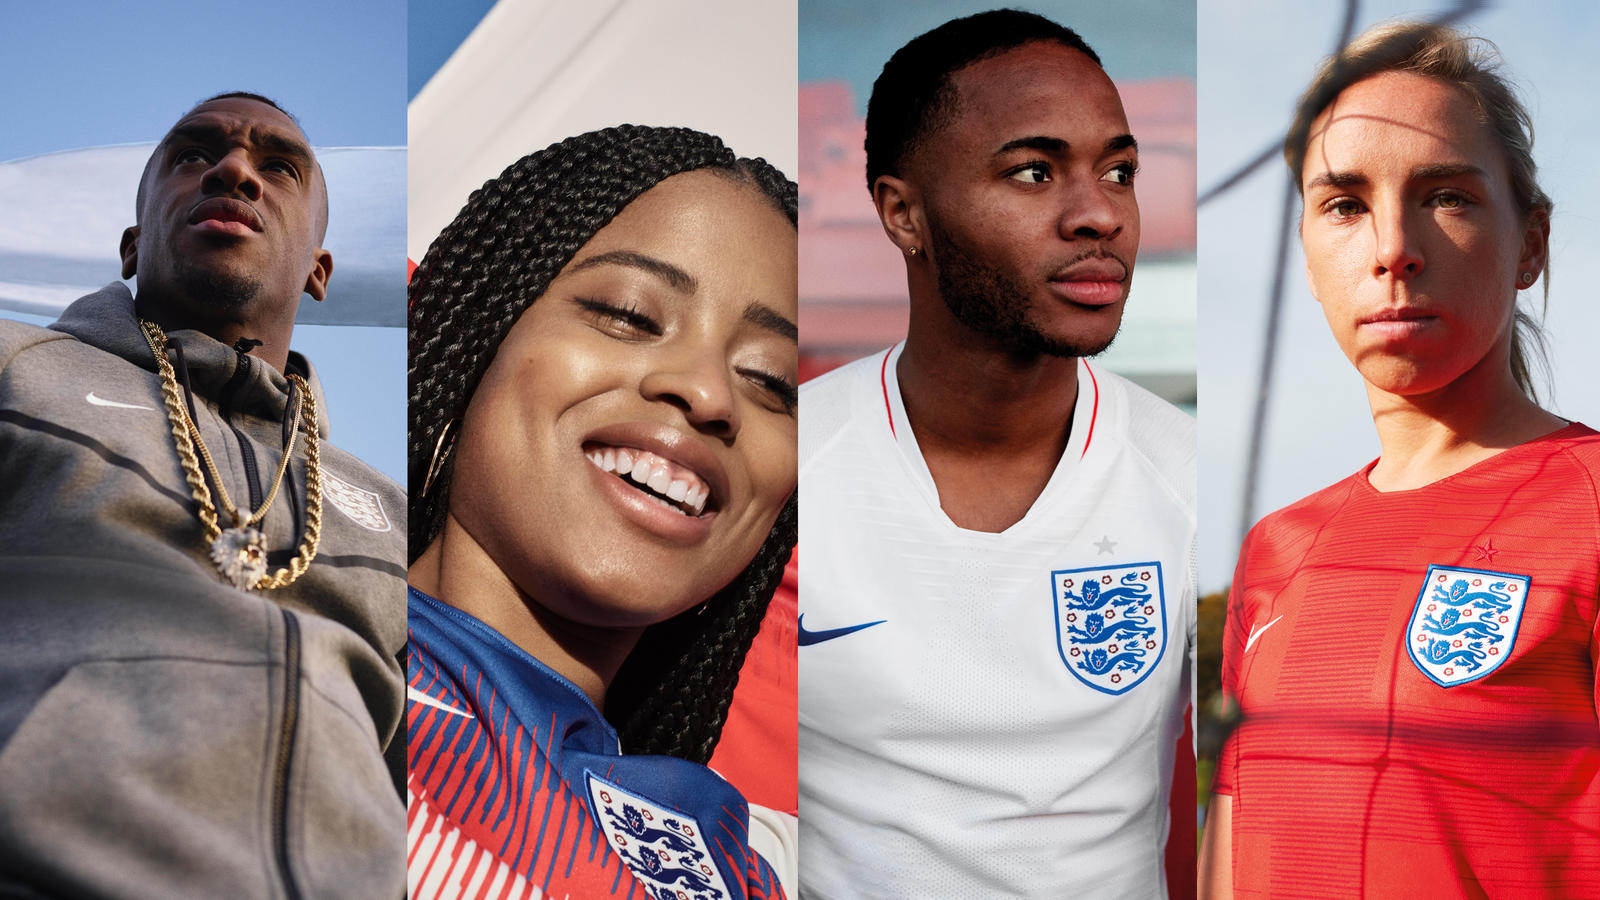 a0b4e5ff3 The 2018 England Football Association Kit and Collection - Nike News